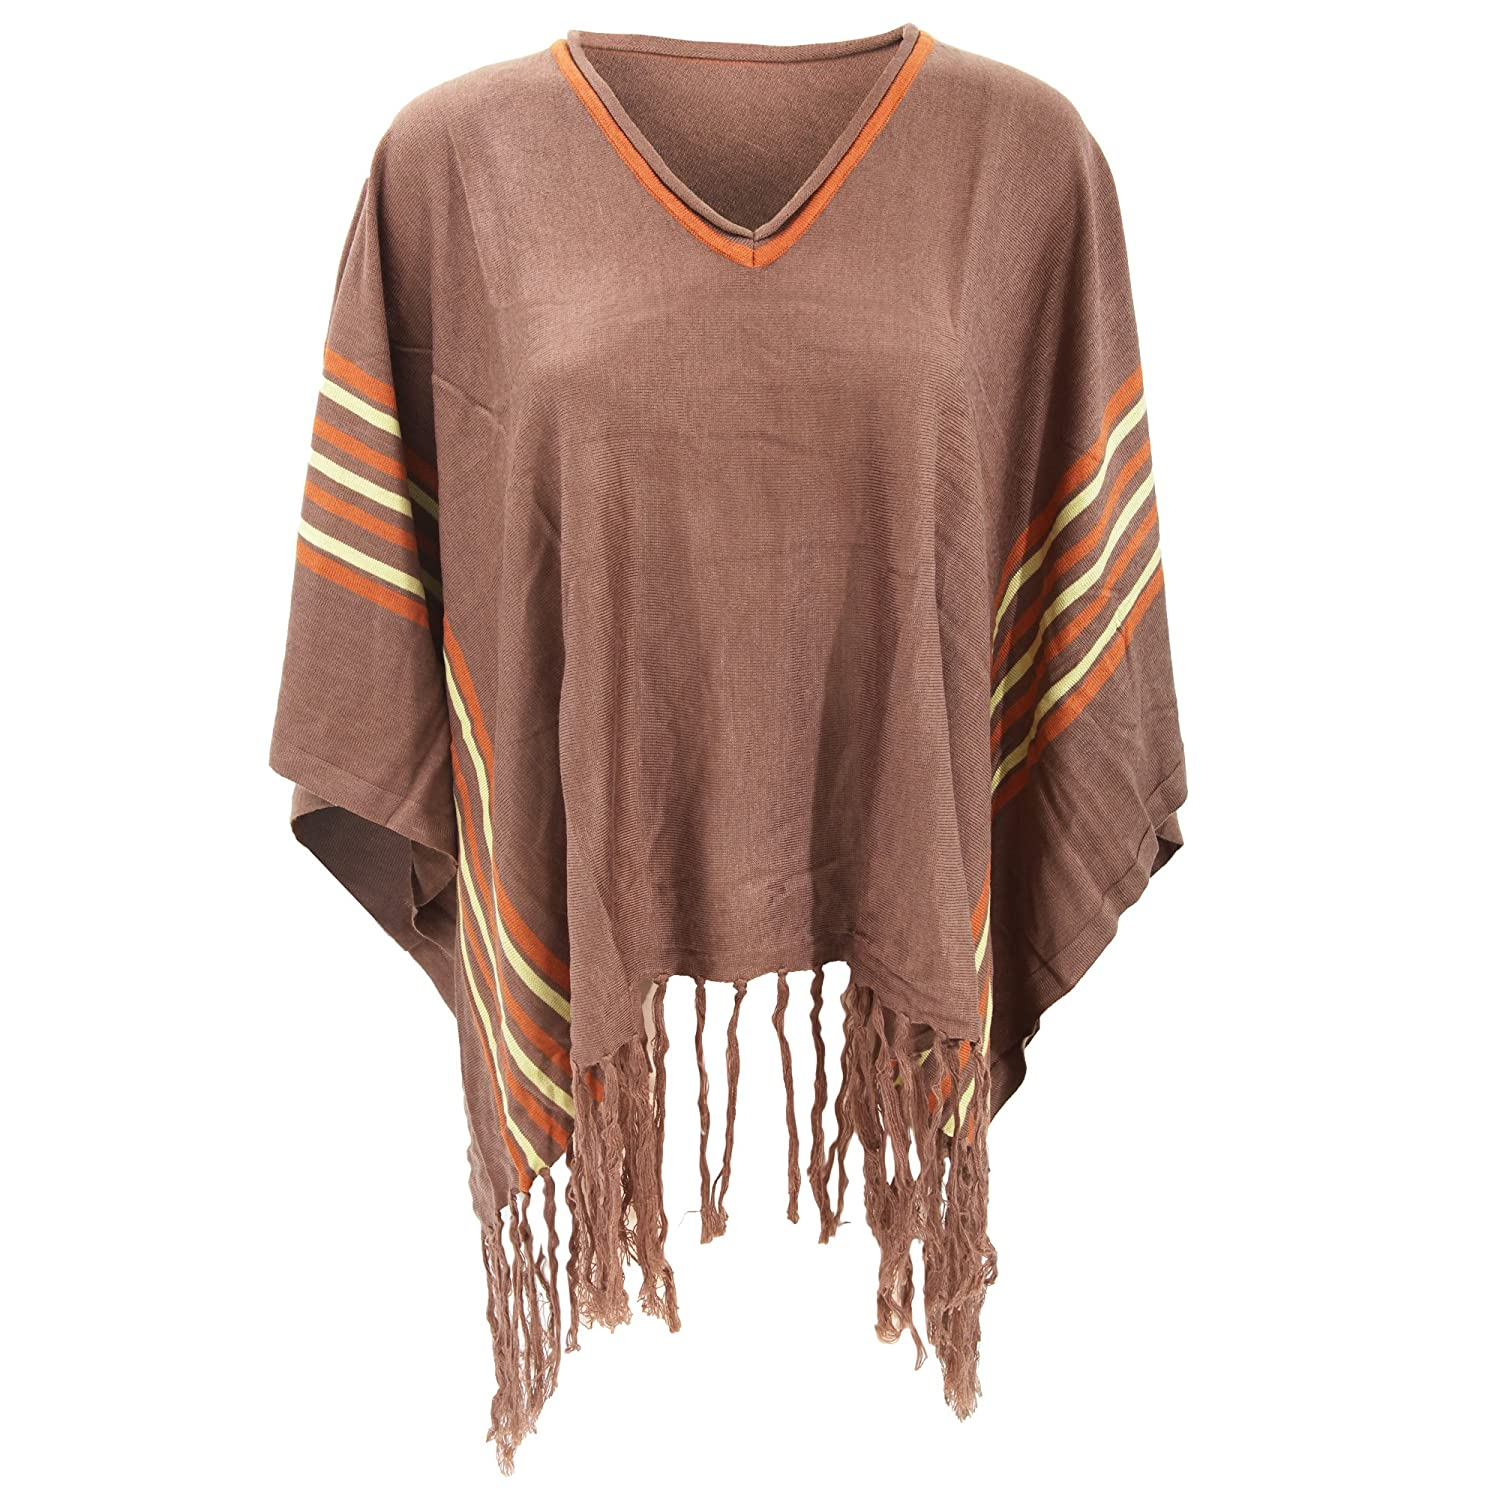 Universal Textiles Womens/Ladies Stripe Pattern Poncho With Fringe Tassels UTKNIT155_1